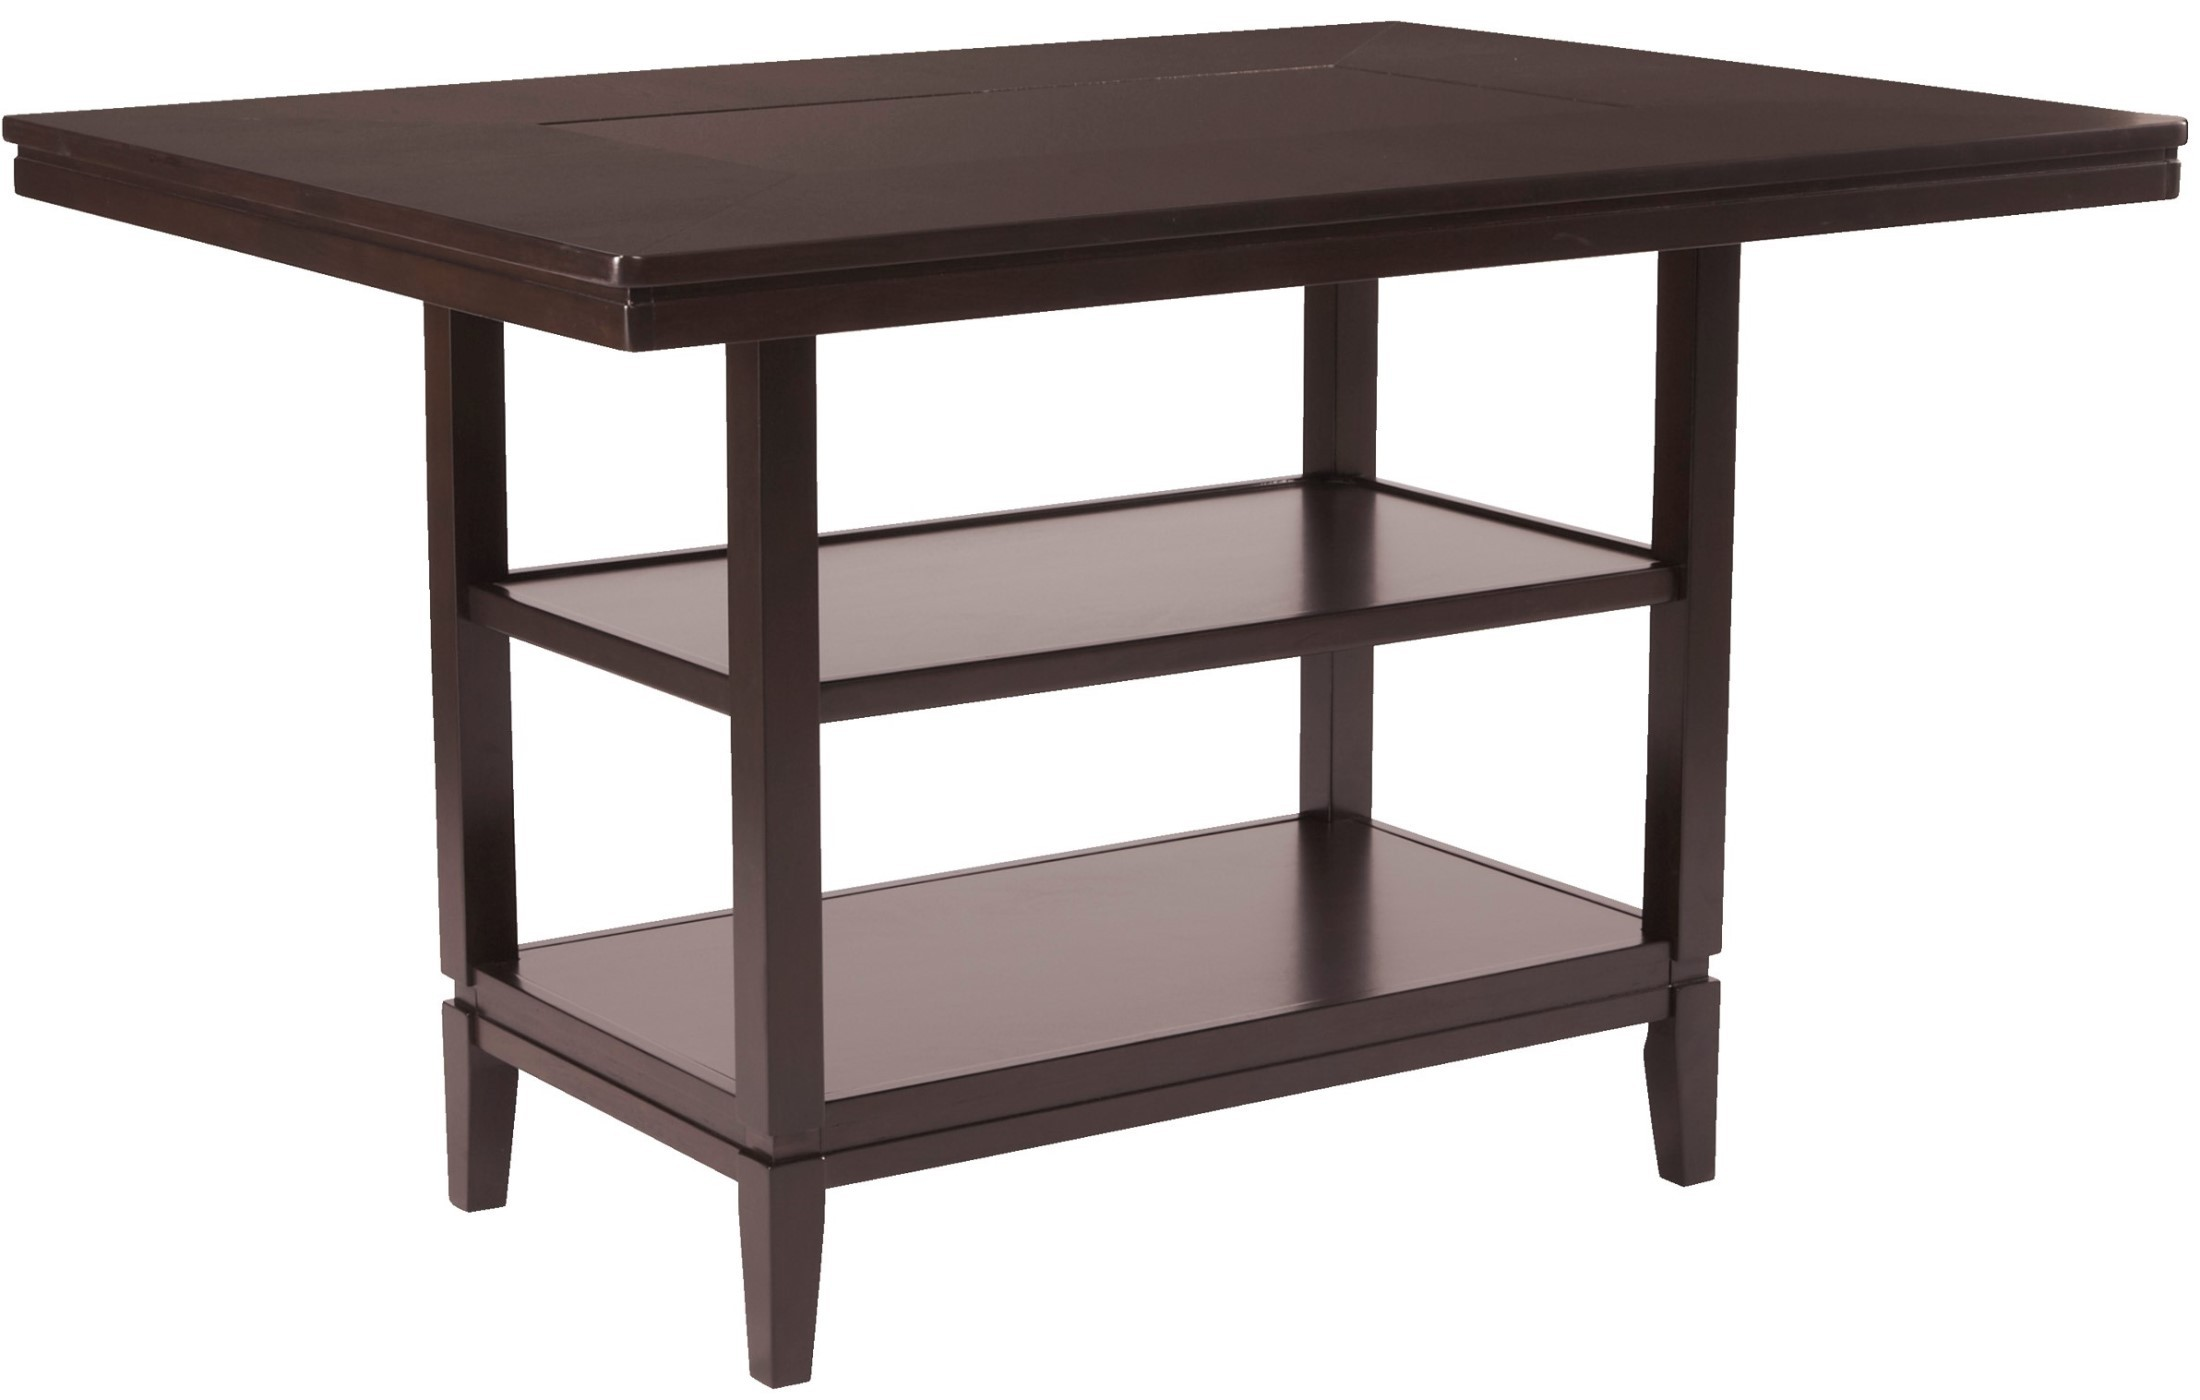 Trishelle Rectangular Dining Room Counter Table From Ashley D550 32 Coleman Furniture